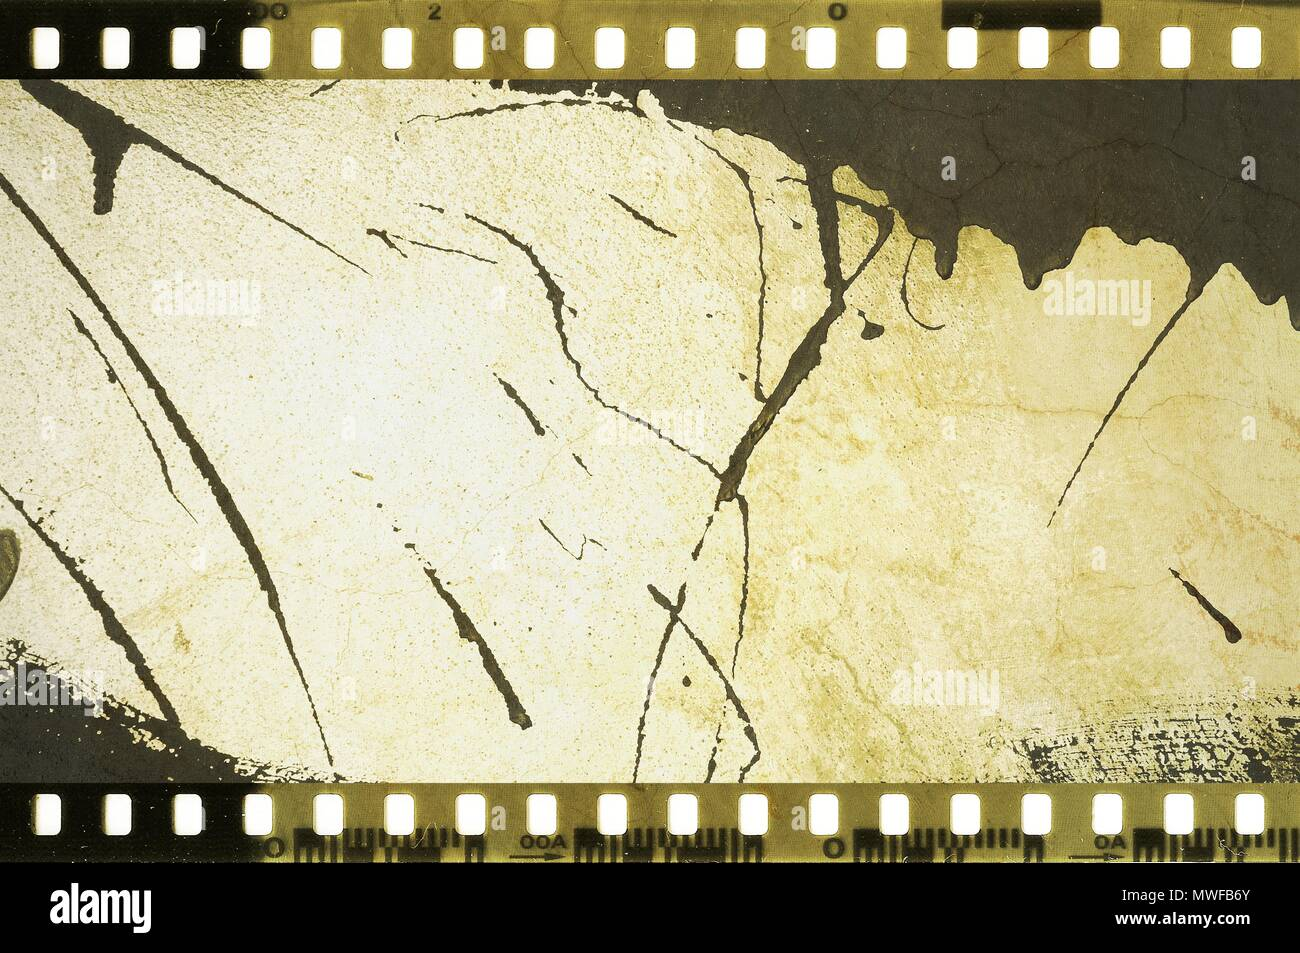 Grunge dripping cracked film strip frame in sepia tones. Damaged wall surface. - Stock Image